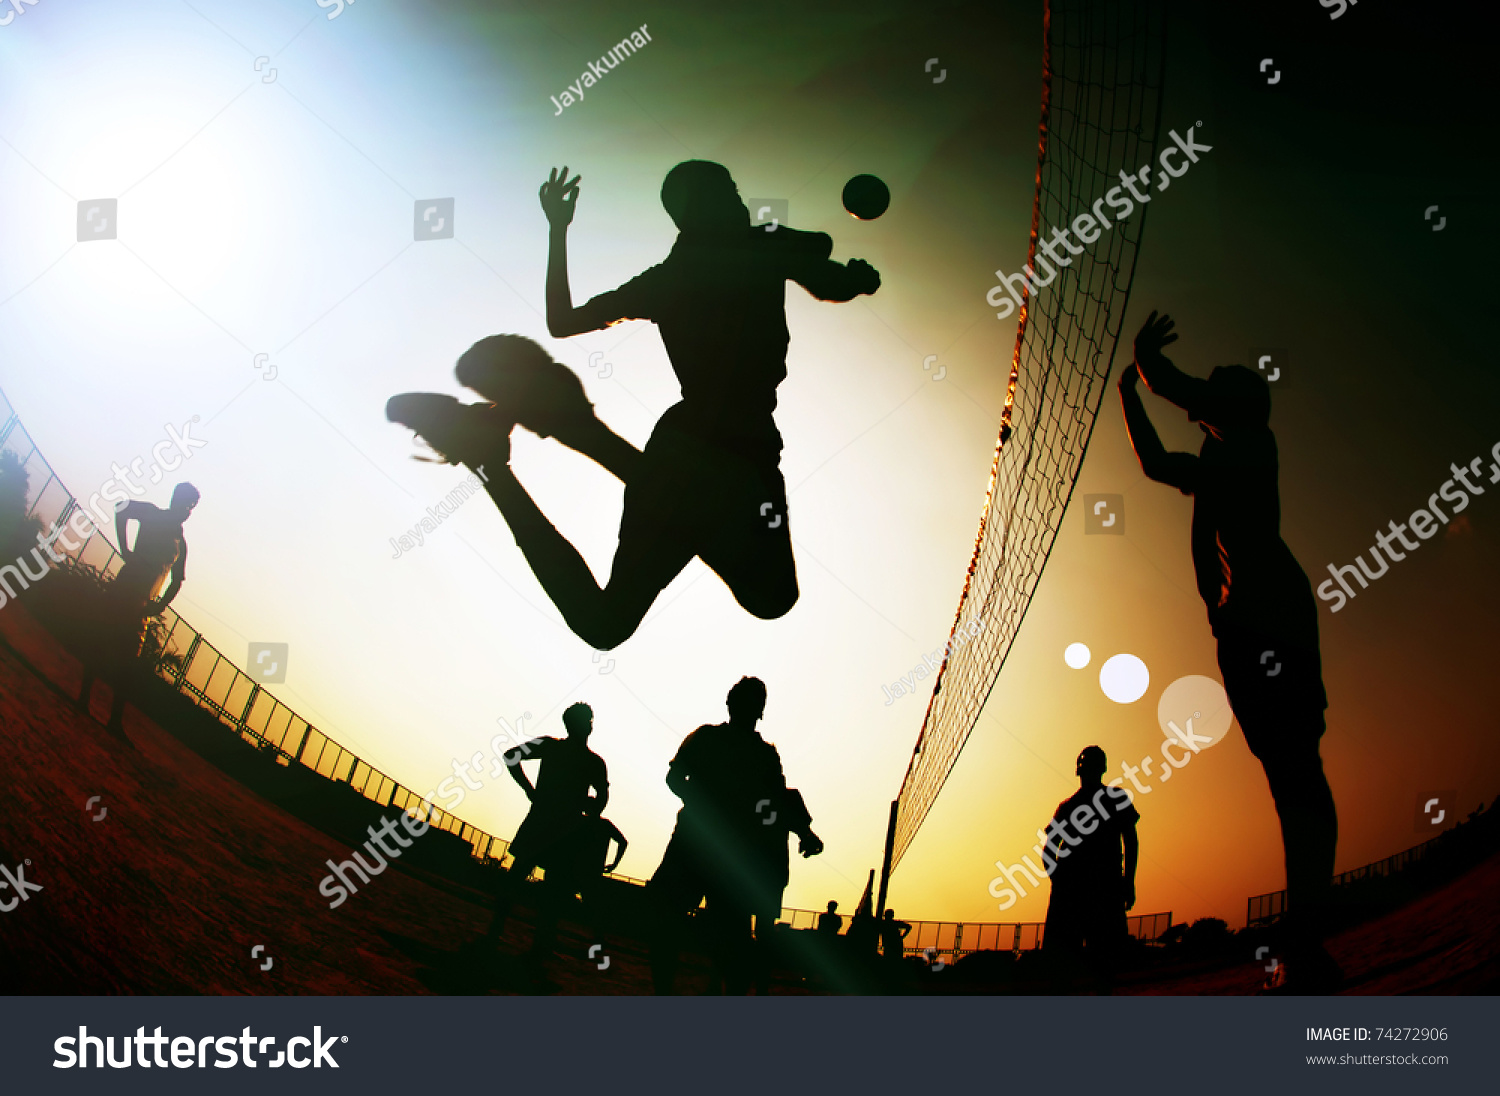 Silhouette Volleyball Player Stock Photo 74272906